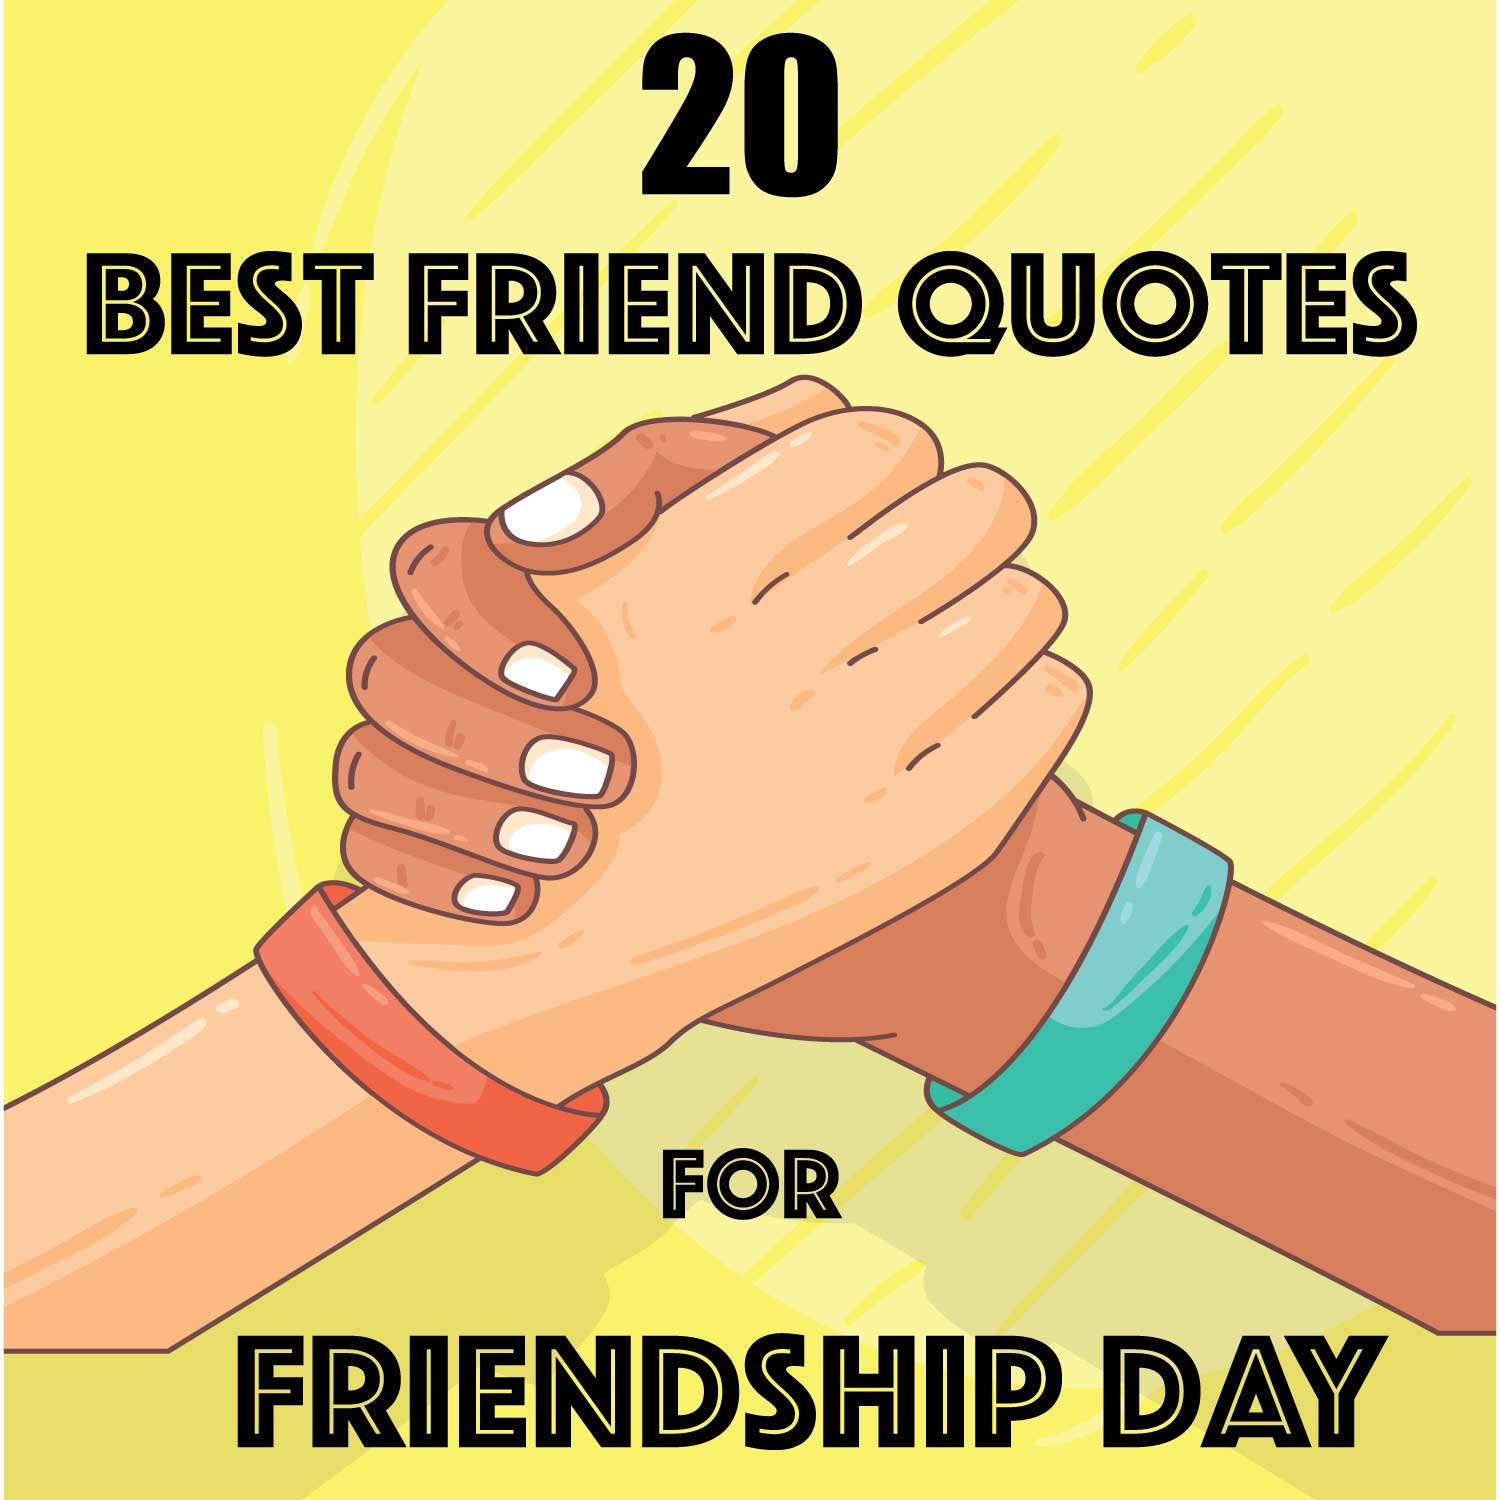 Friendship-Quotes---20-Best-Friend-Quotes-for-Friendship-Day